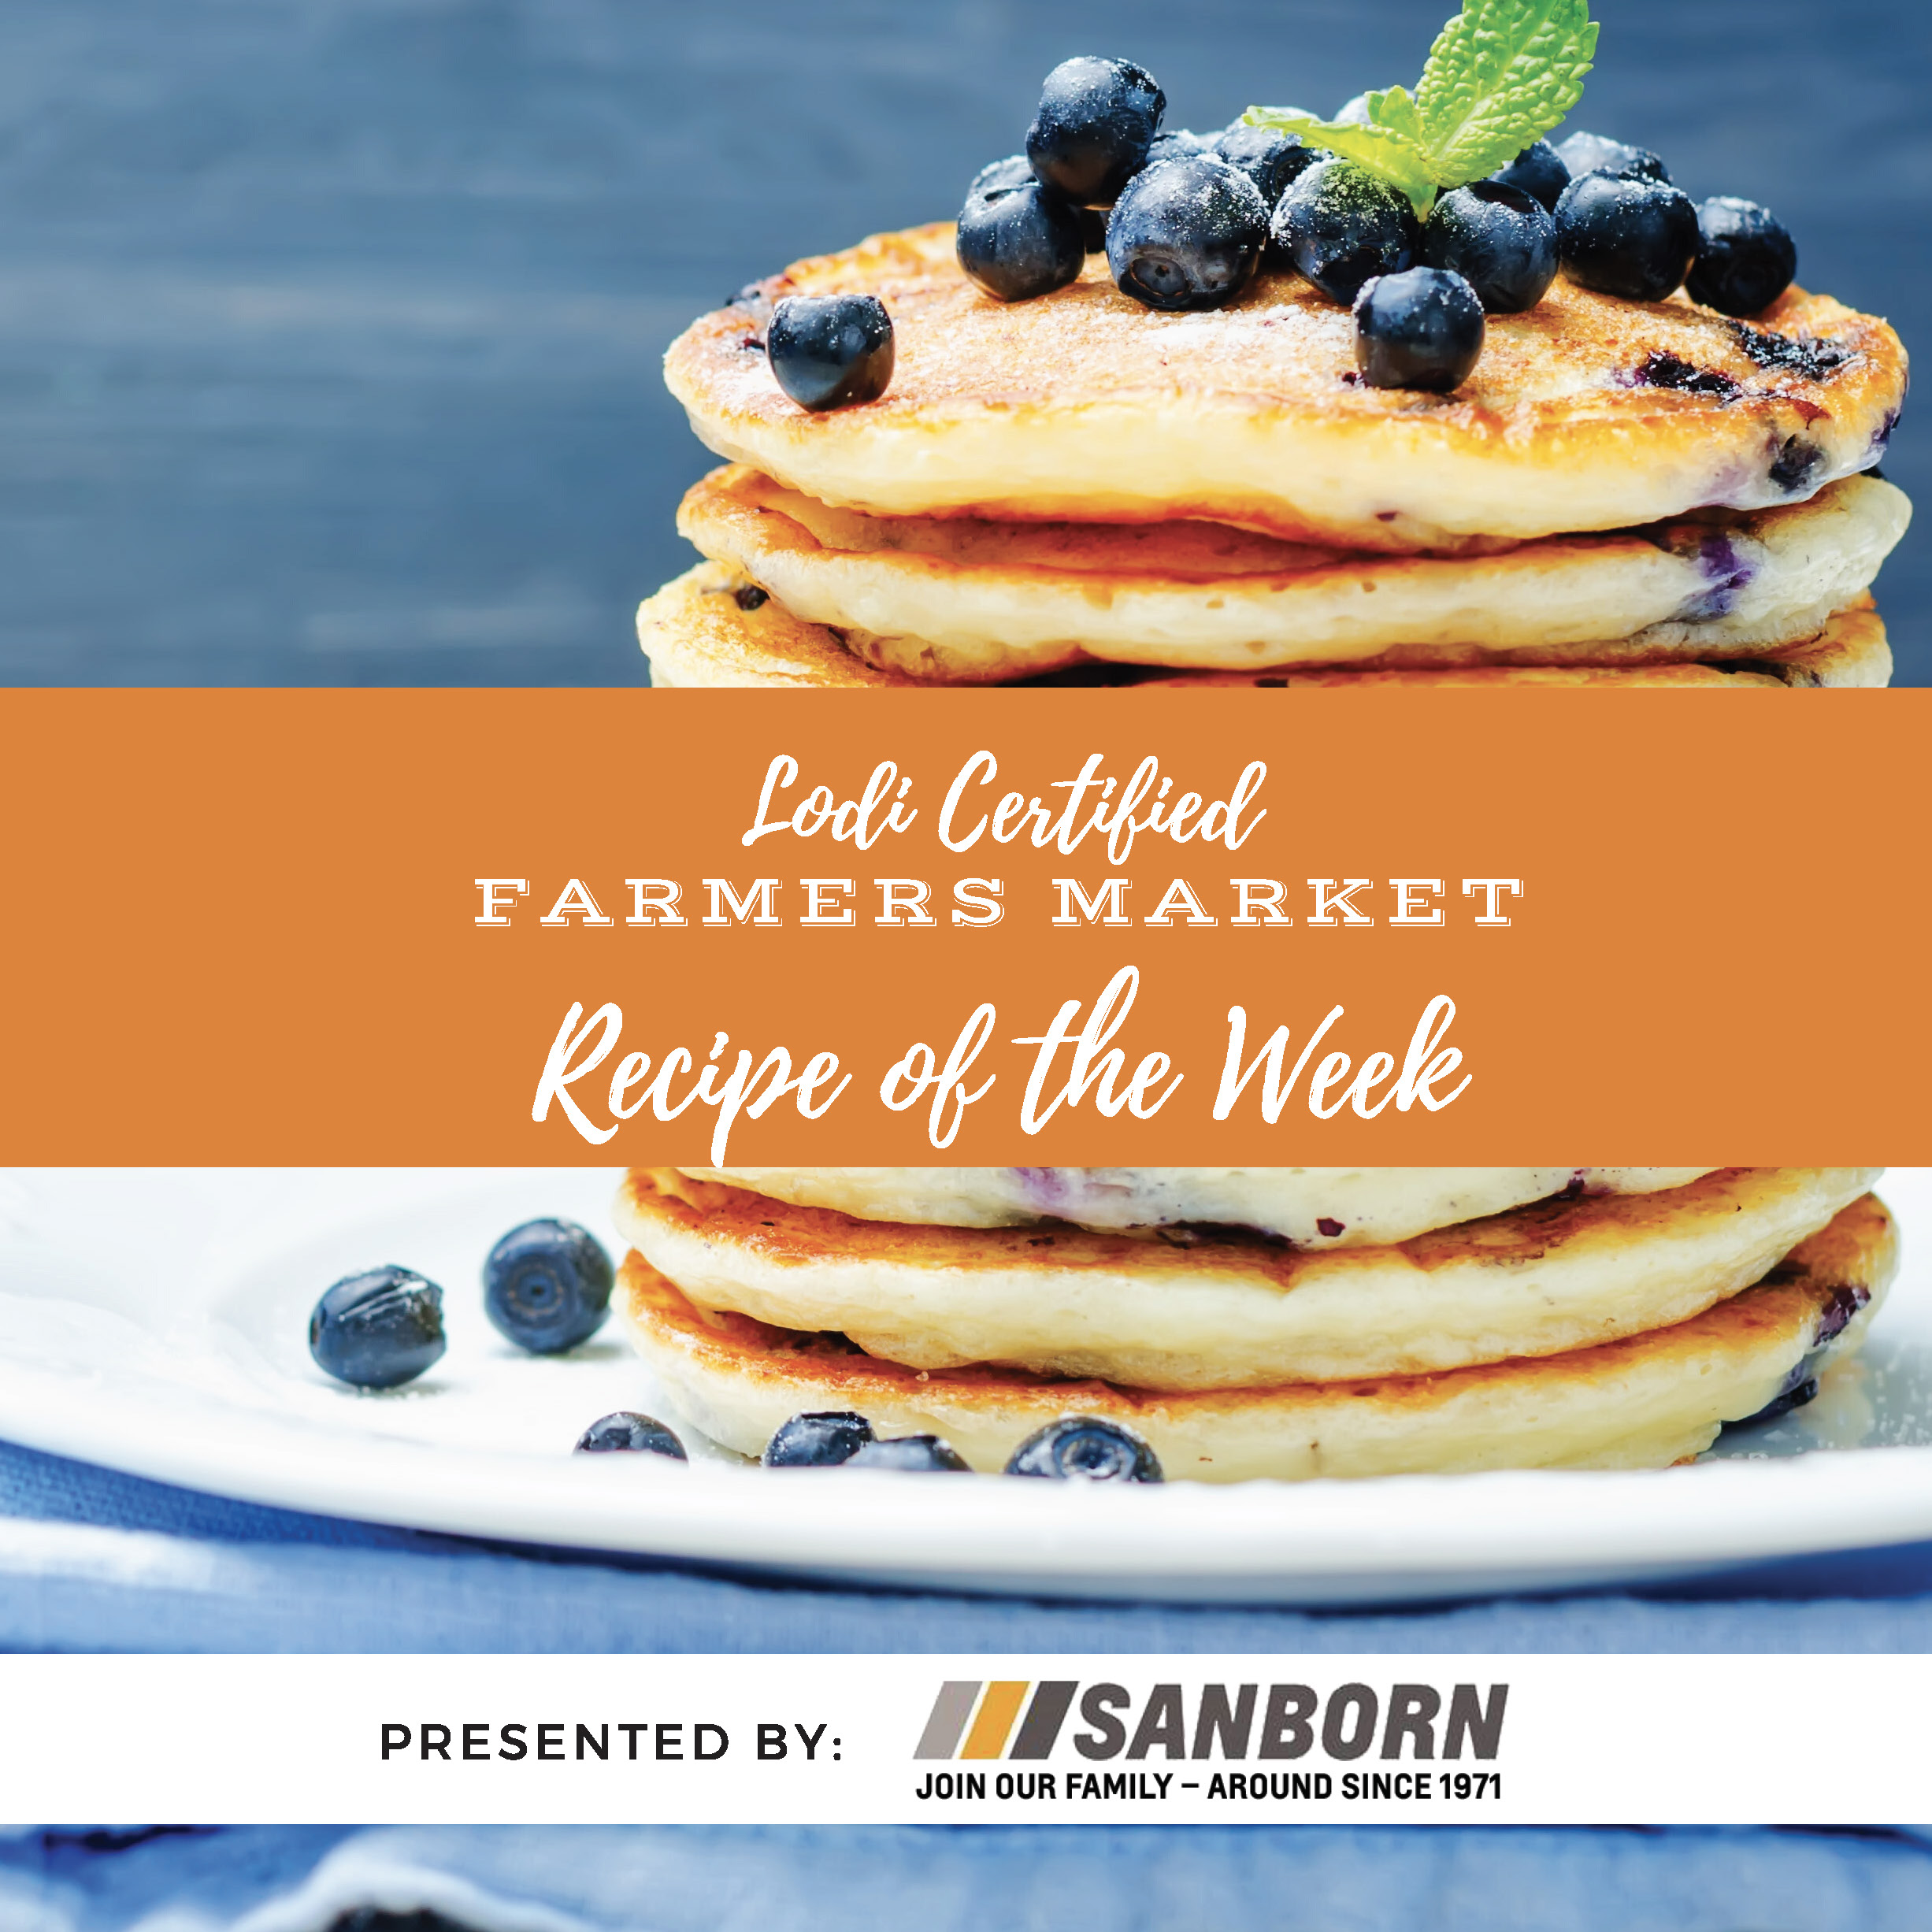 Recipe of the Week- Lemon Ricotta Pancakes with Blueberry Syrup